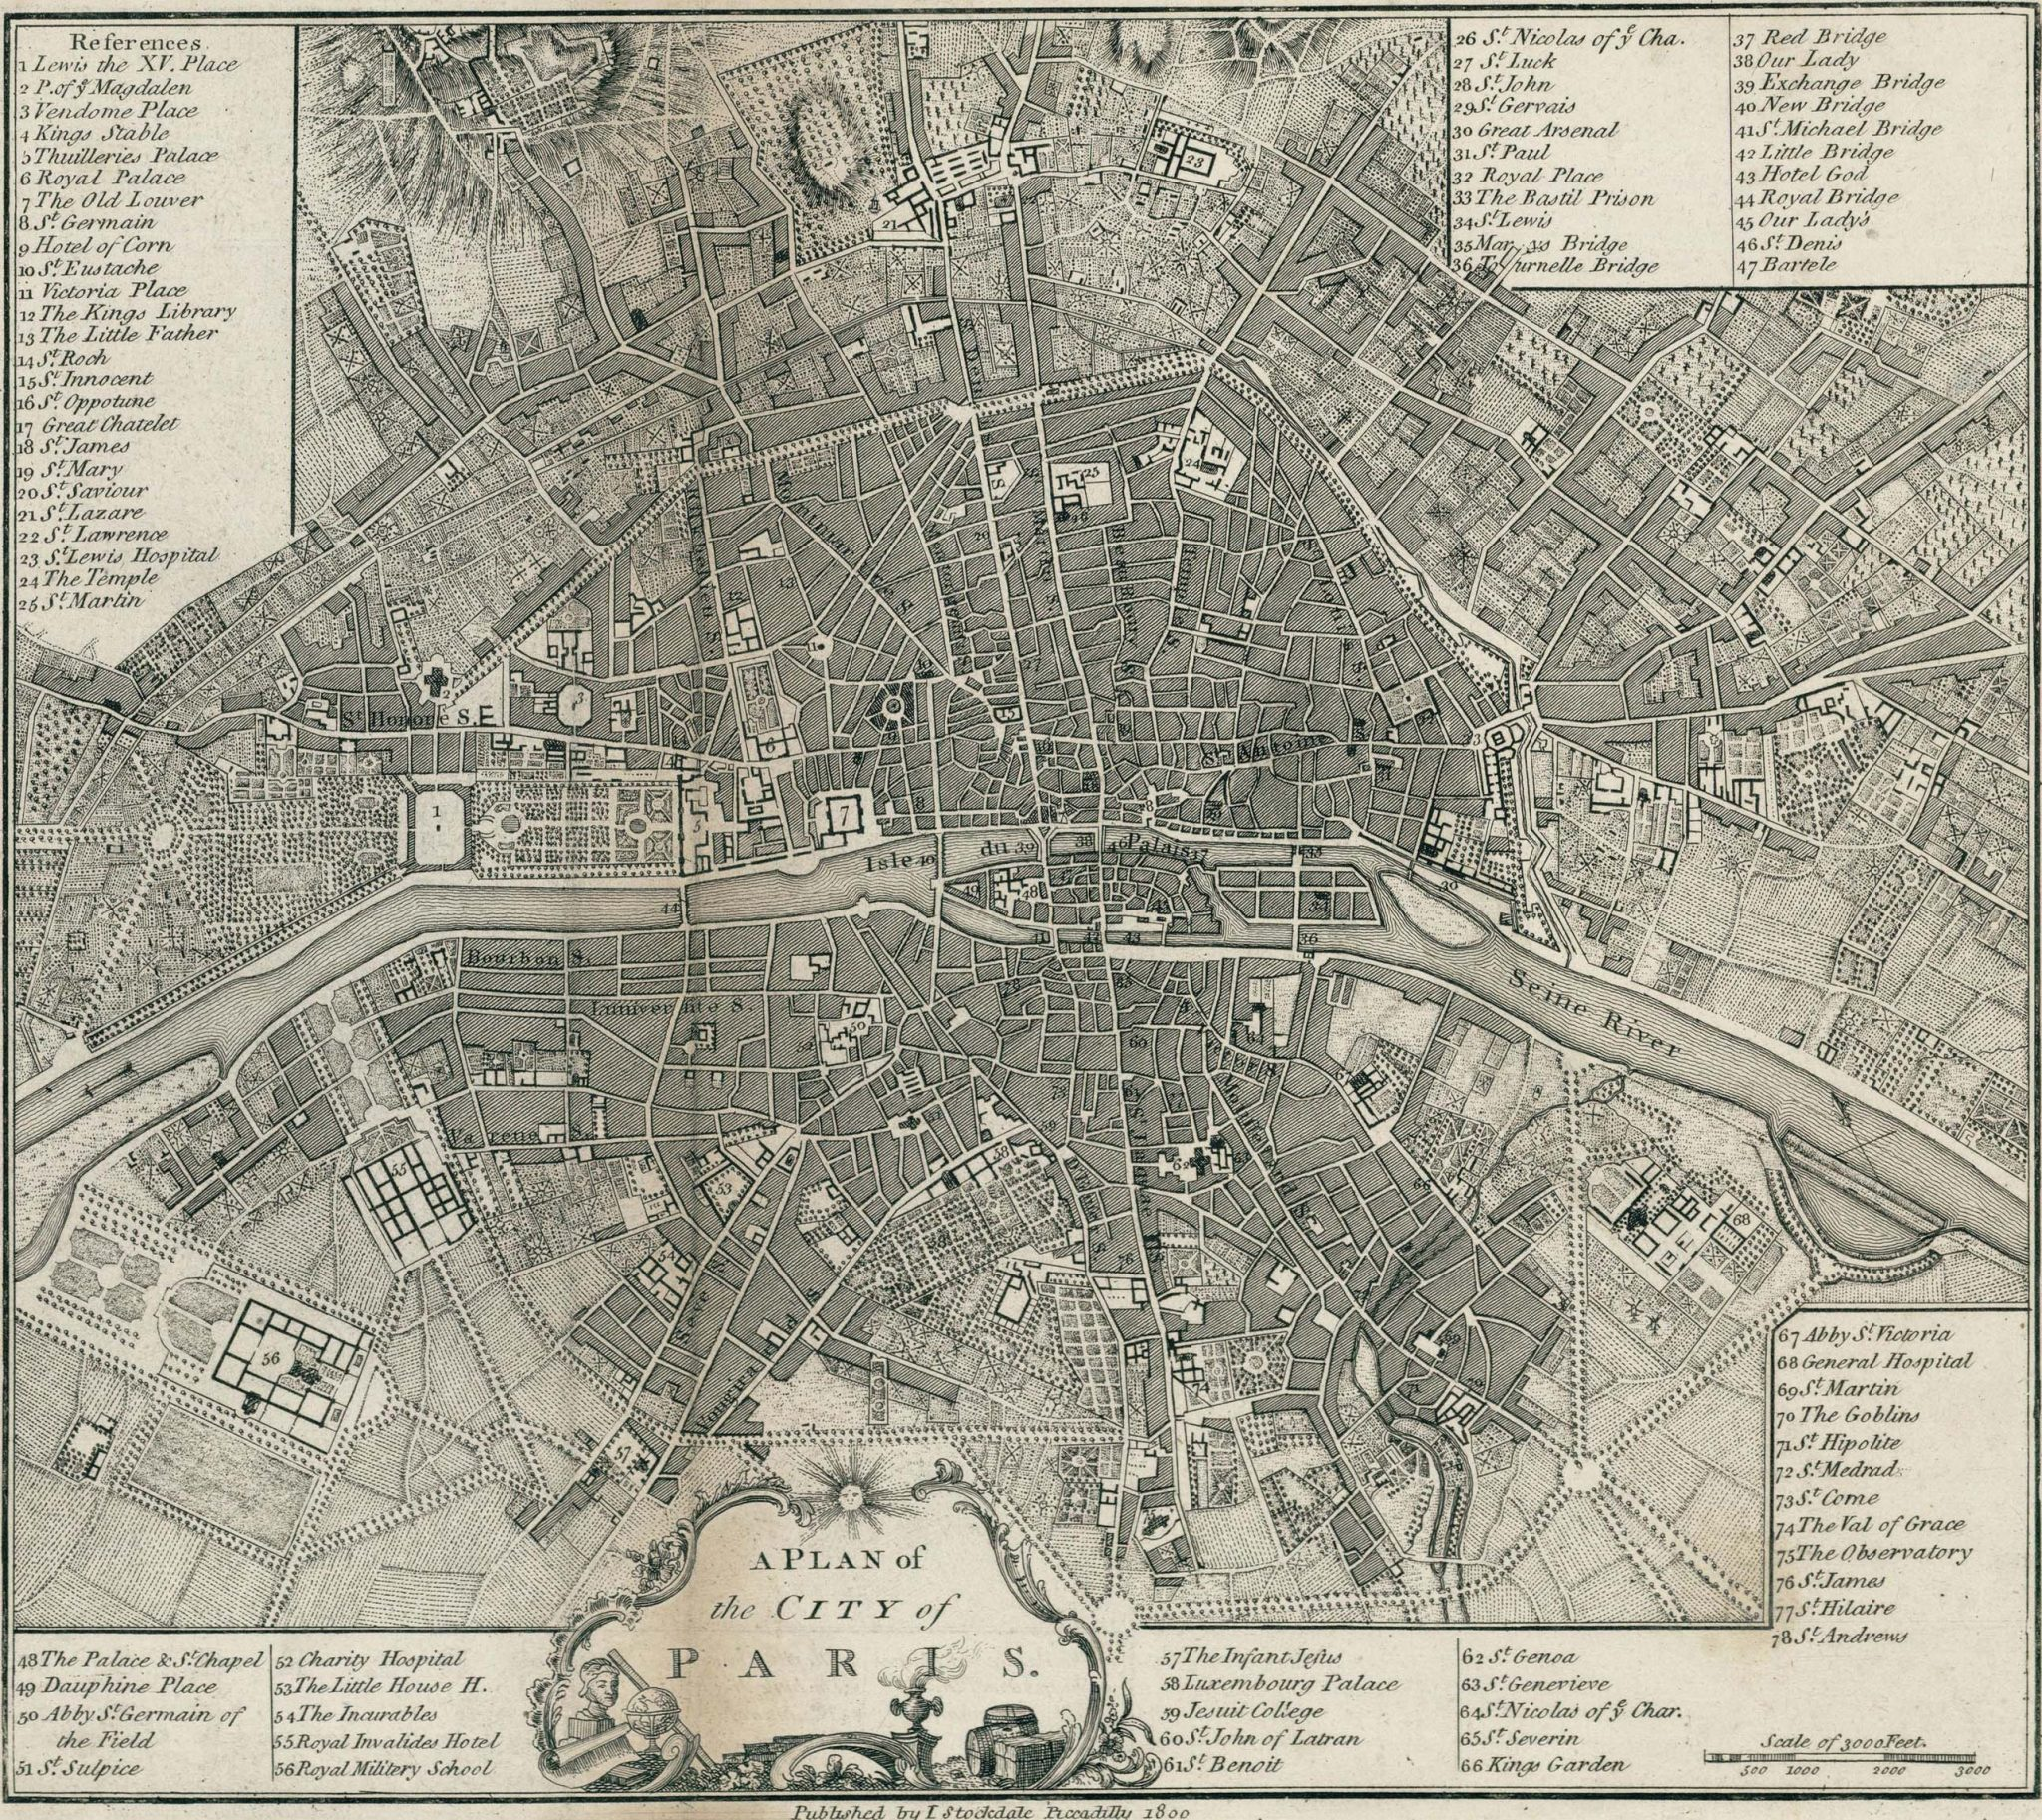 Old Map of Paris 1800 Click on the image to see or download the full size version